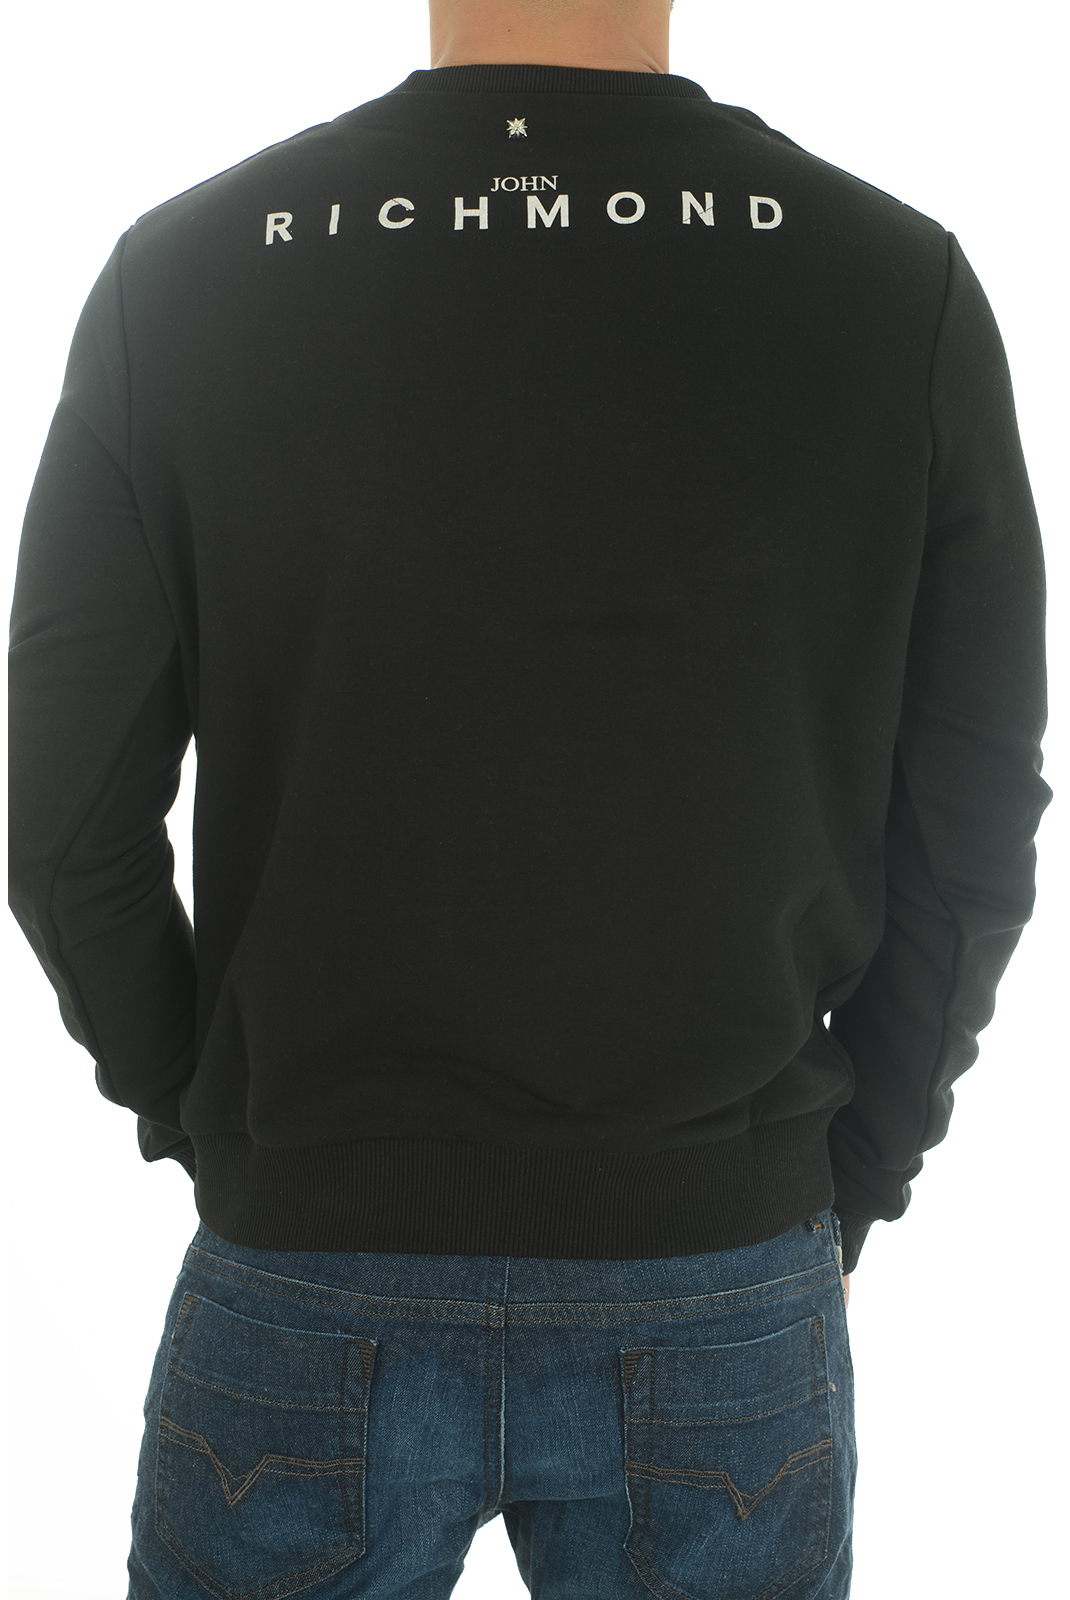 Sweatshirts  John richmond JACIARA W0083 NOIR